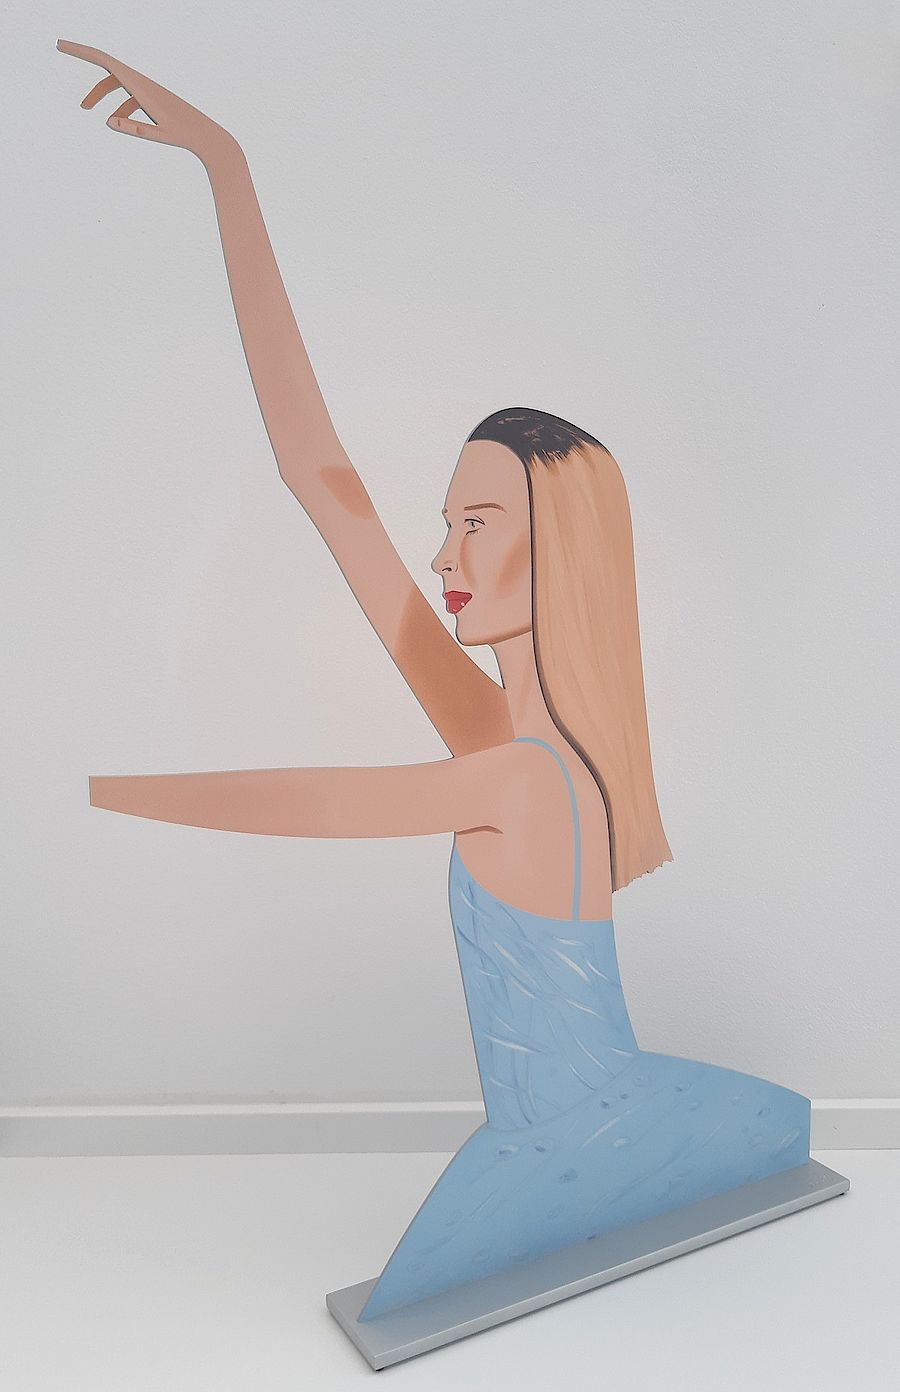 Korff Stiftung - Alex Katz - Skulpturen - Dancer 2 (Cutout)